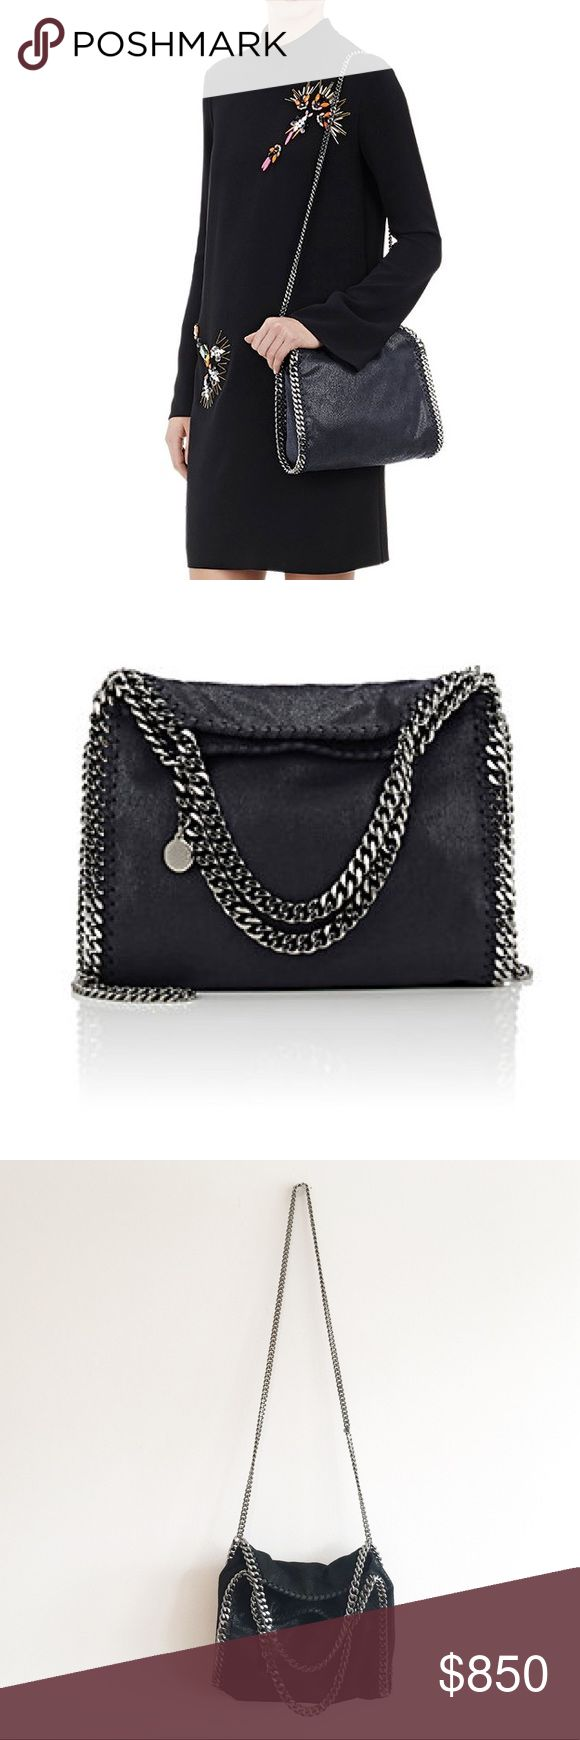 "Stella McCartney Mini Baby Bella (Falabella) Great condition  Whipstitched trim accented with metal chain. Polished gunmetal-tone hardware. Lined with logo-jacquard fabric. Faux-leather-trimmed zip pocket at interior. Curb-chain handles and strap. Magnetic snap closure. 7.0"" height x 10.5"" width x 4.0"" depth (approximately). 4.5"" handle drop, 19.5"" strap drop (approximately). Vegetarian-friendly faux suede. Made in Italy. Stella McCartney Bags"